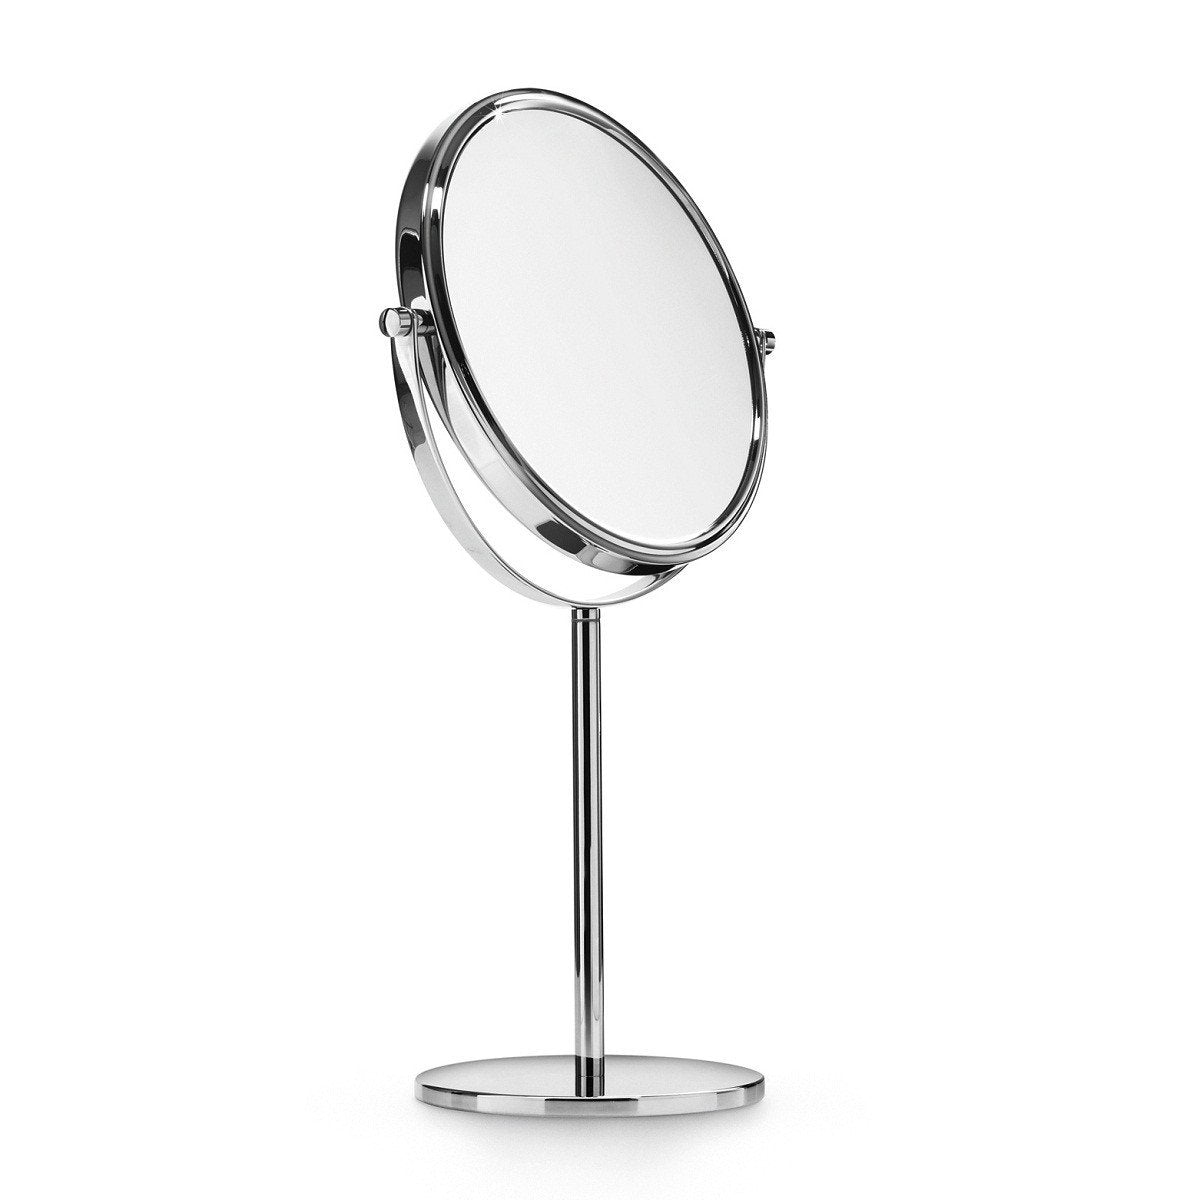 Lineabeta Classic Tabletop Mirror, 3x